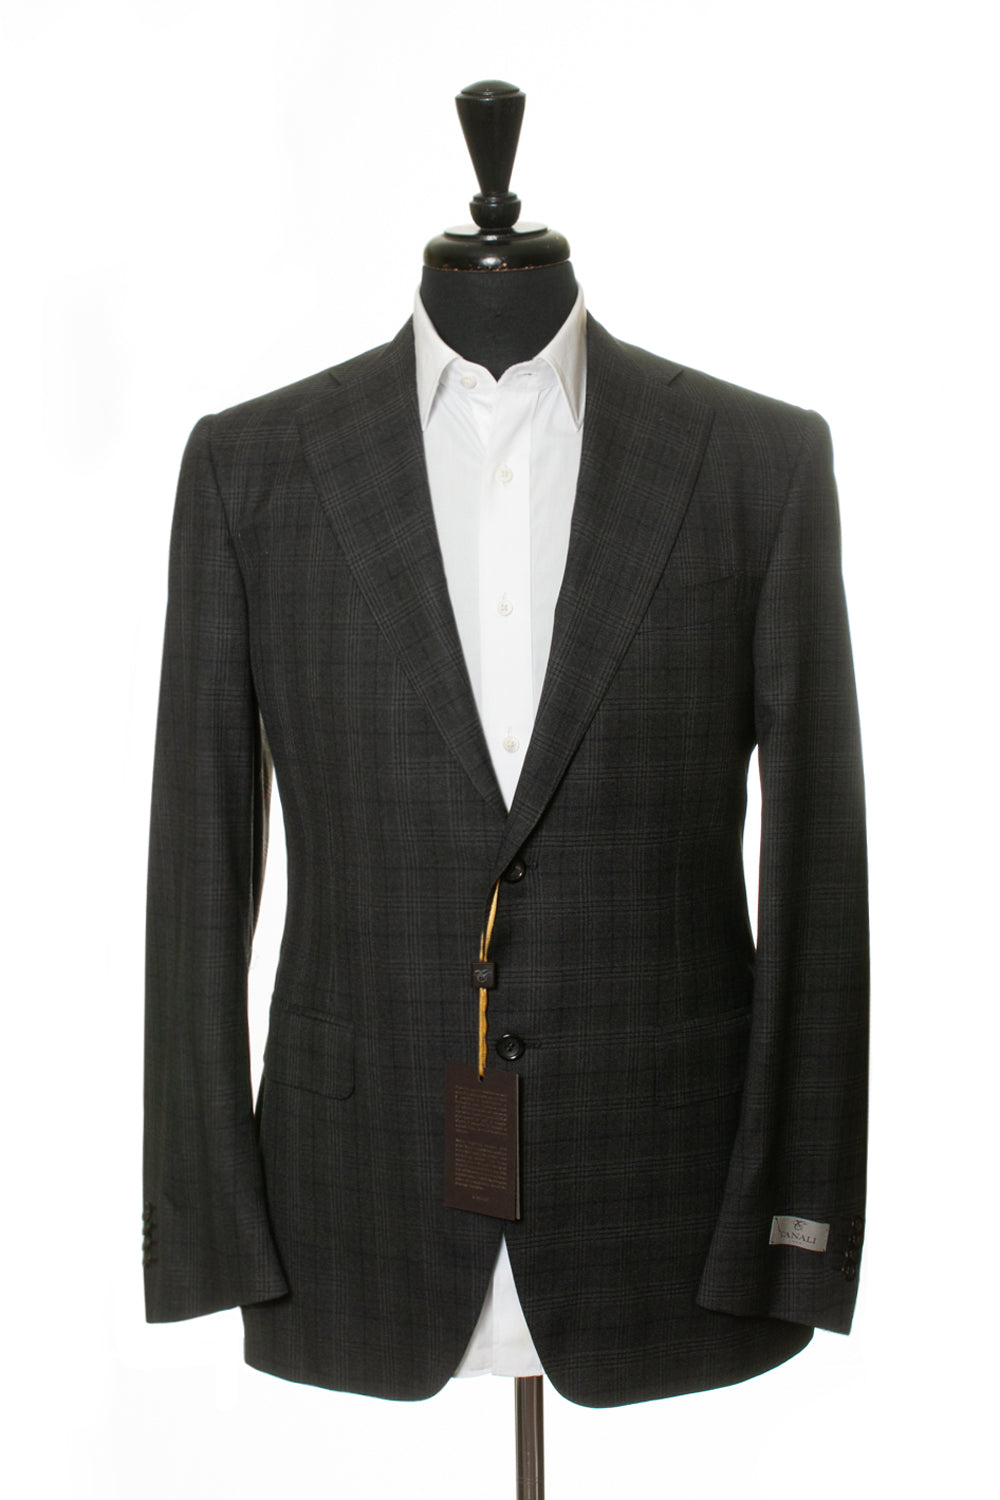 Canali 1934 Exclusive NWT Grey Check Super 150s Wool Suit for Luxmrkt.com Menswear Consignment Edmonton